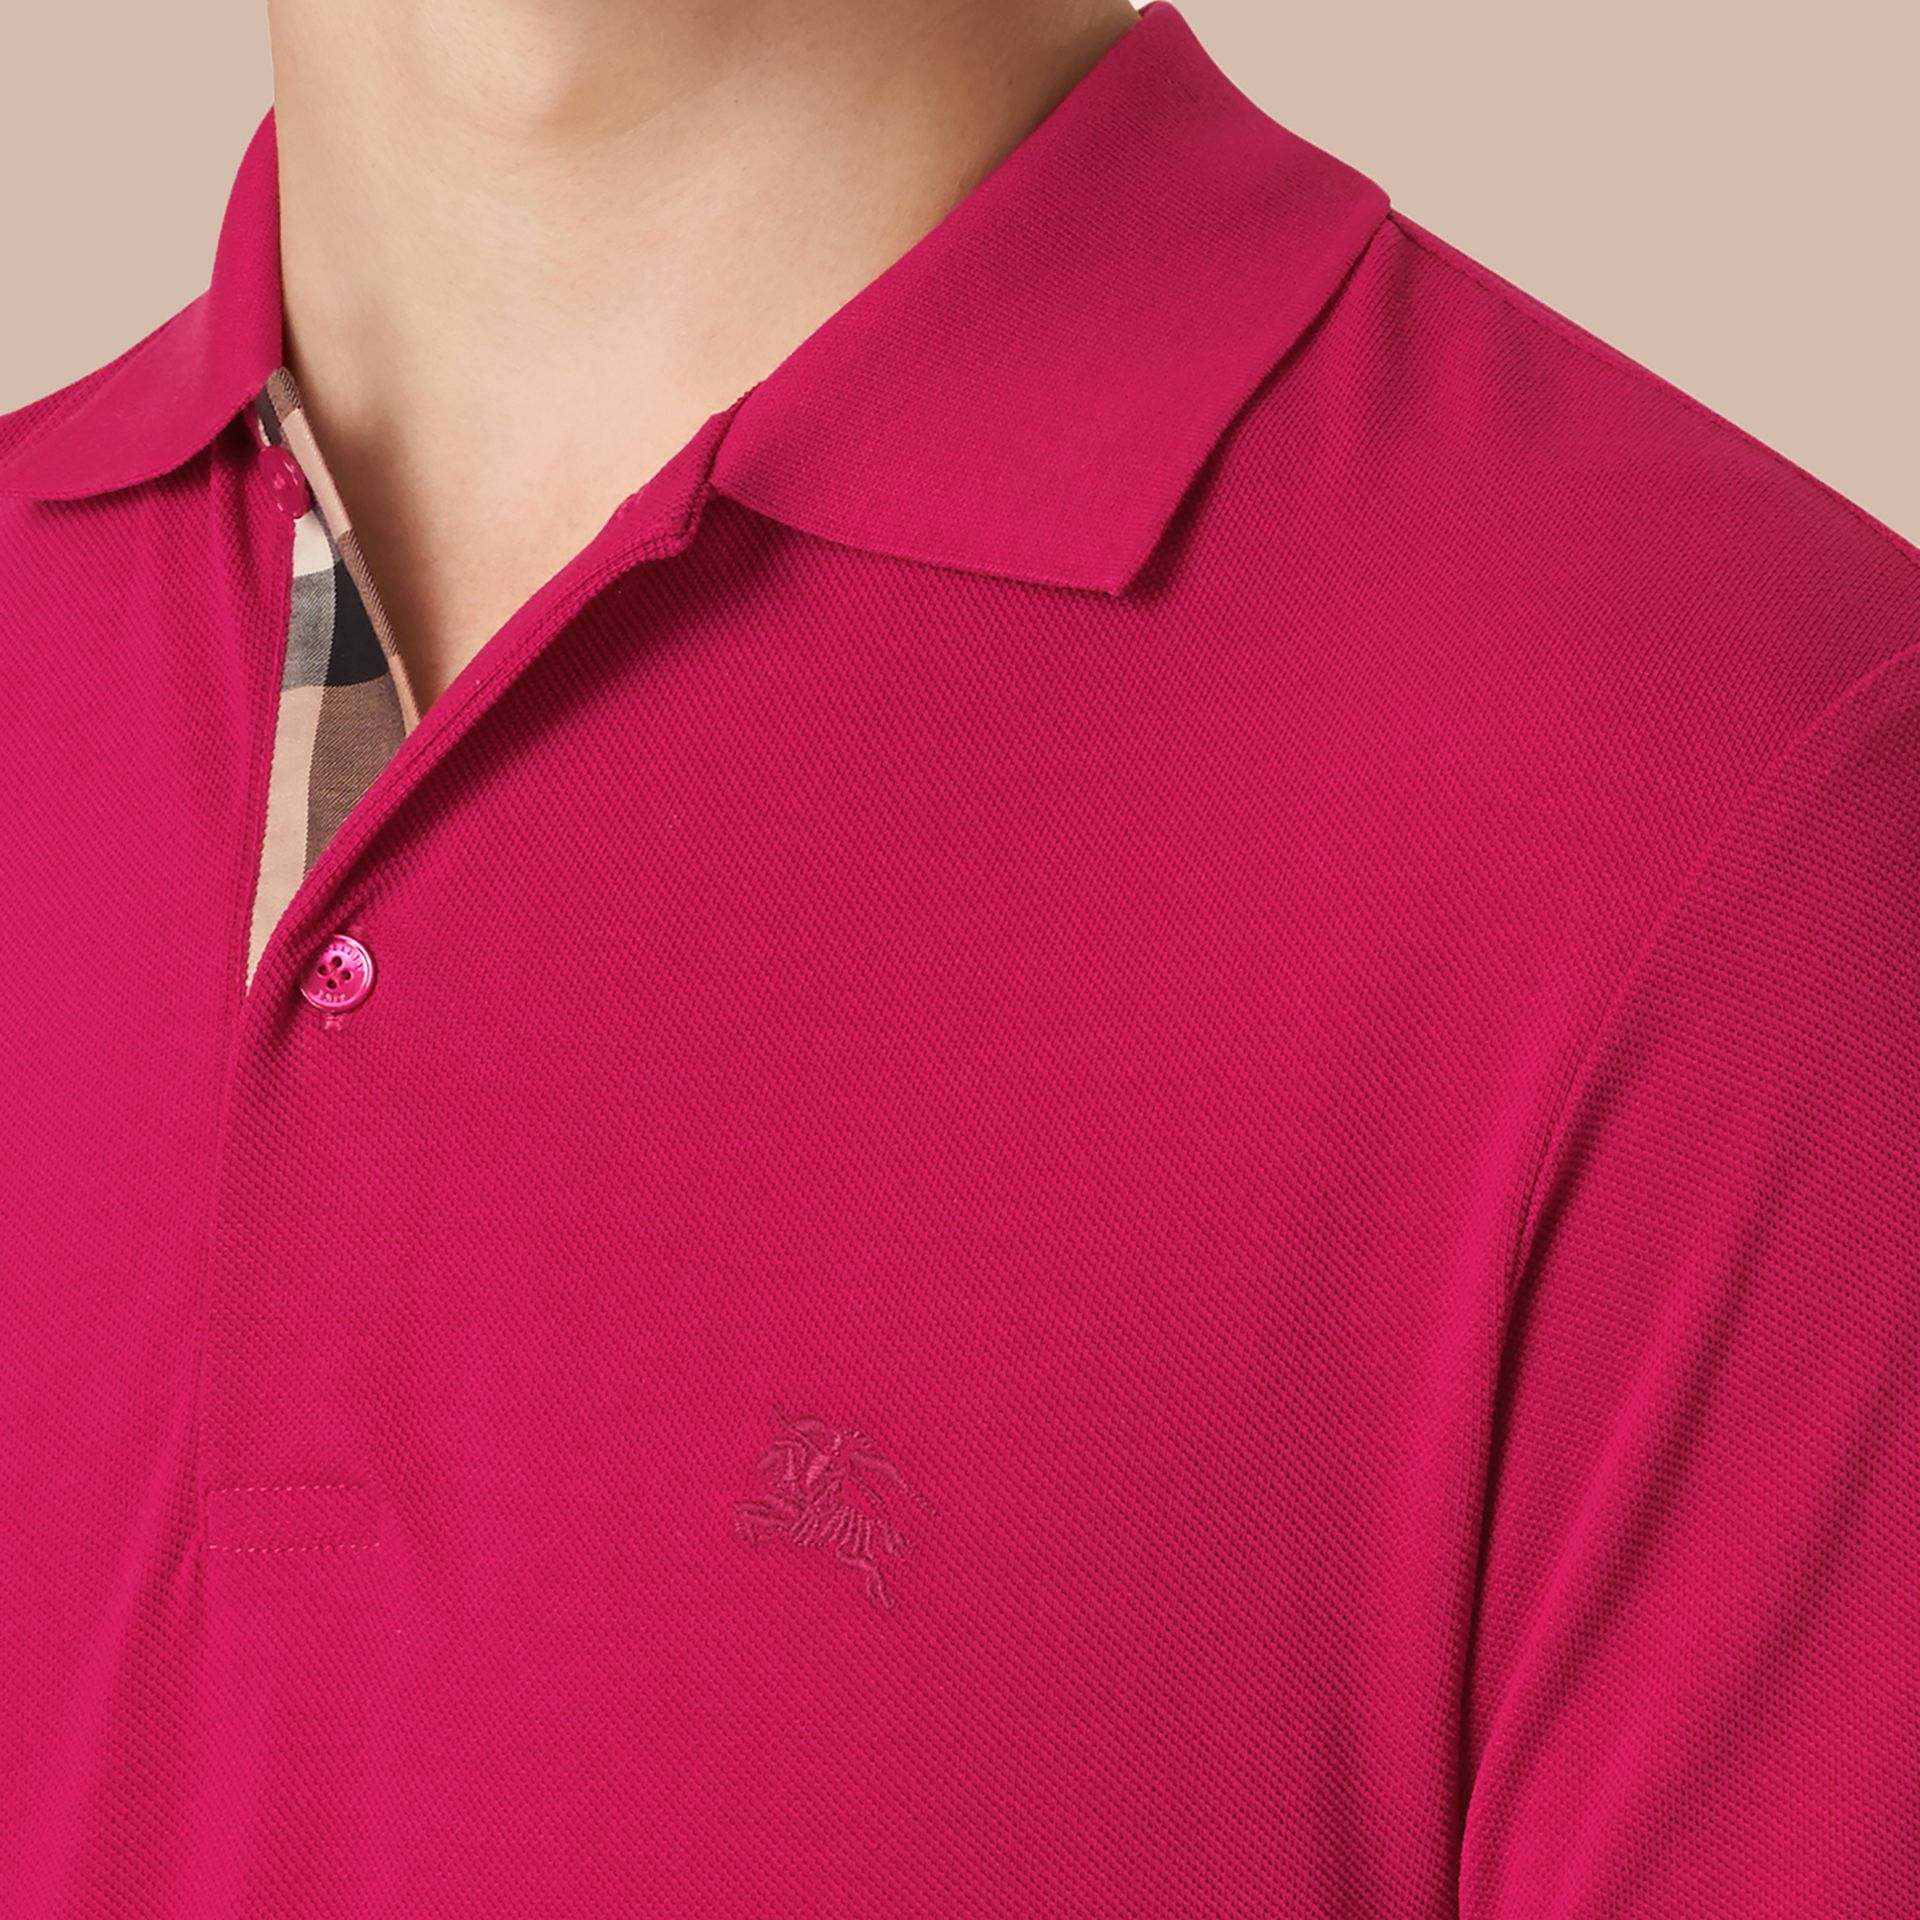 Vibrant fuchsia Check Placket Cotton Piqué Polo Shirt Vibrant Fuchsia - gallery image 2